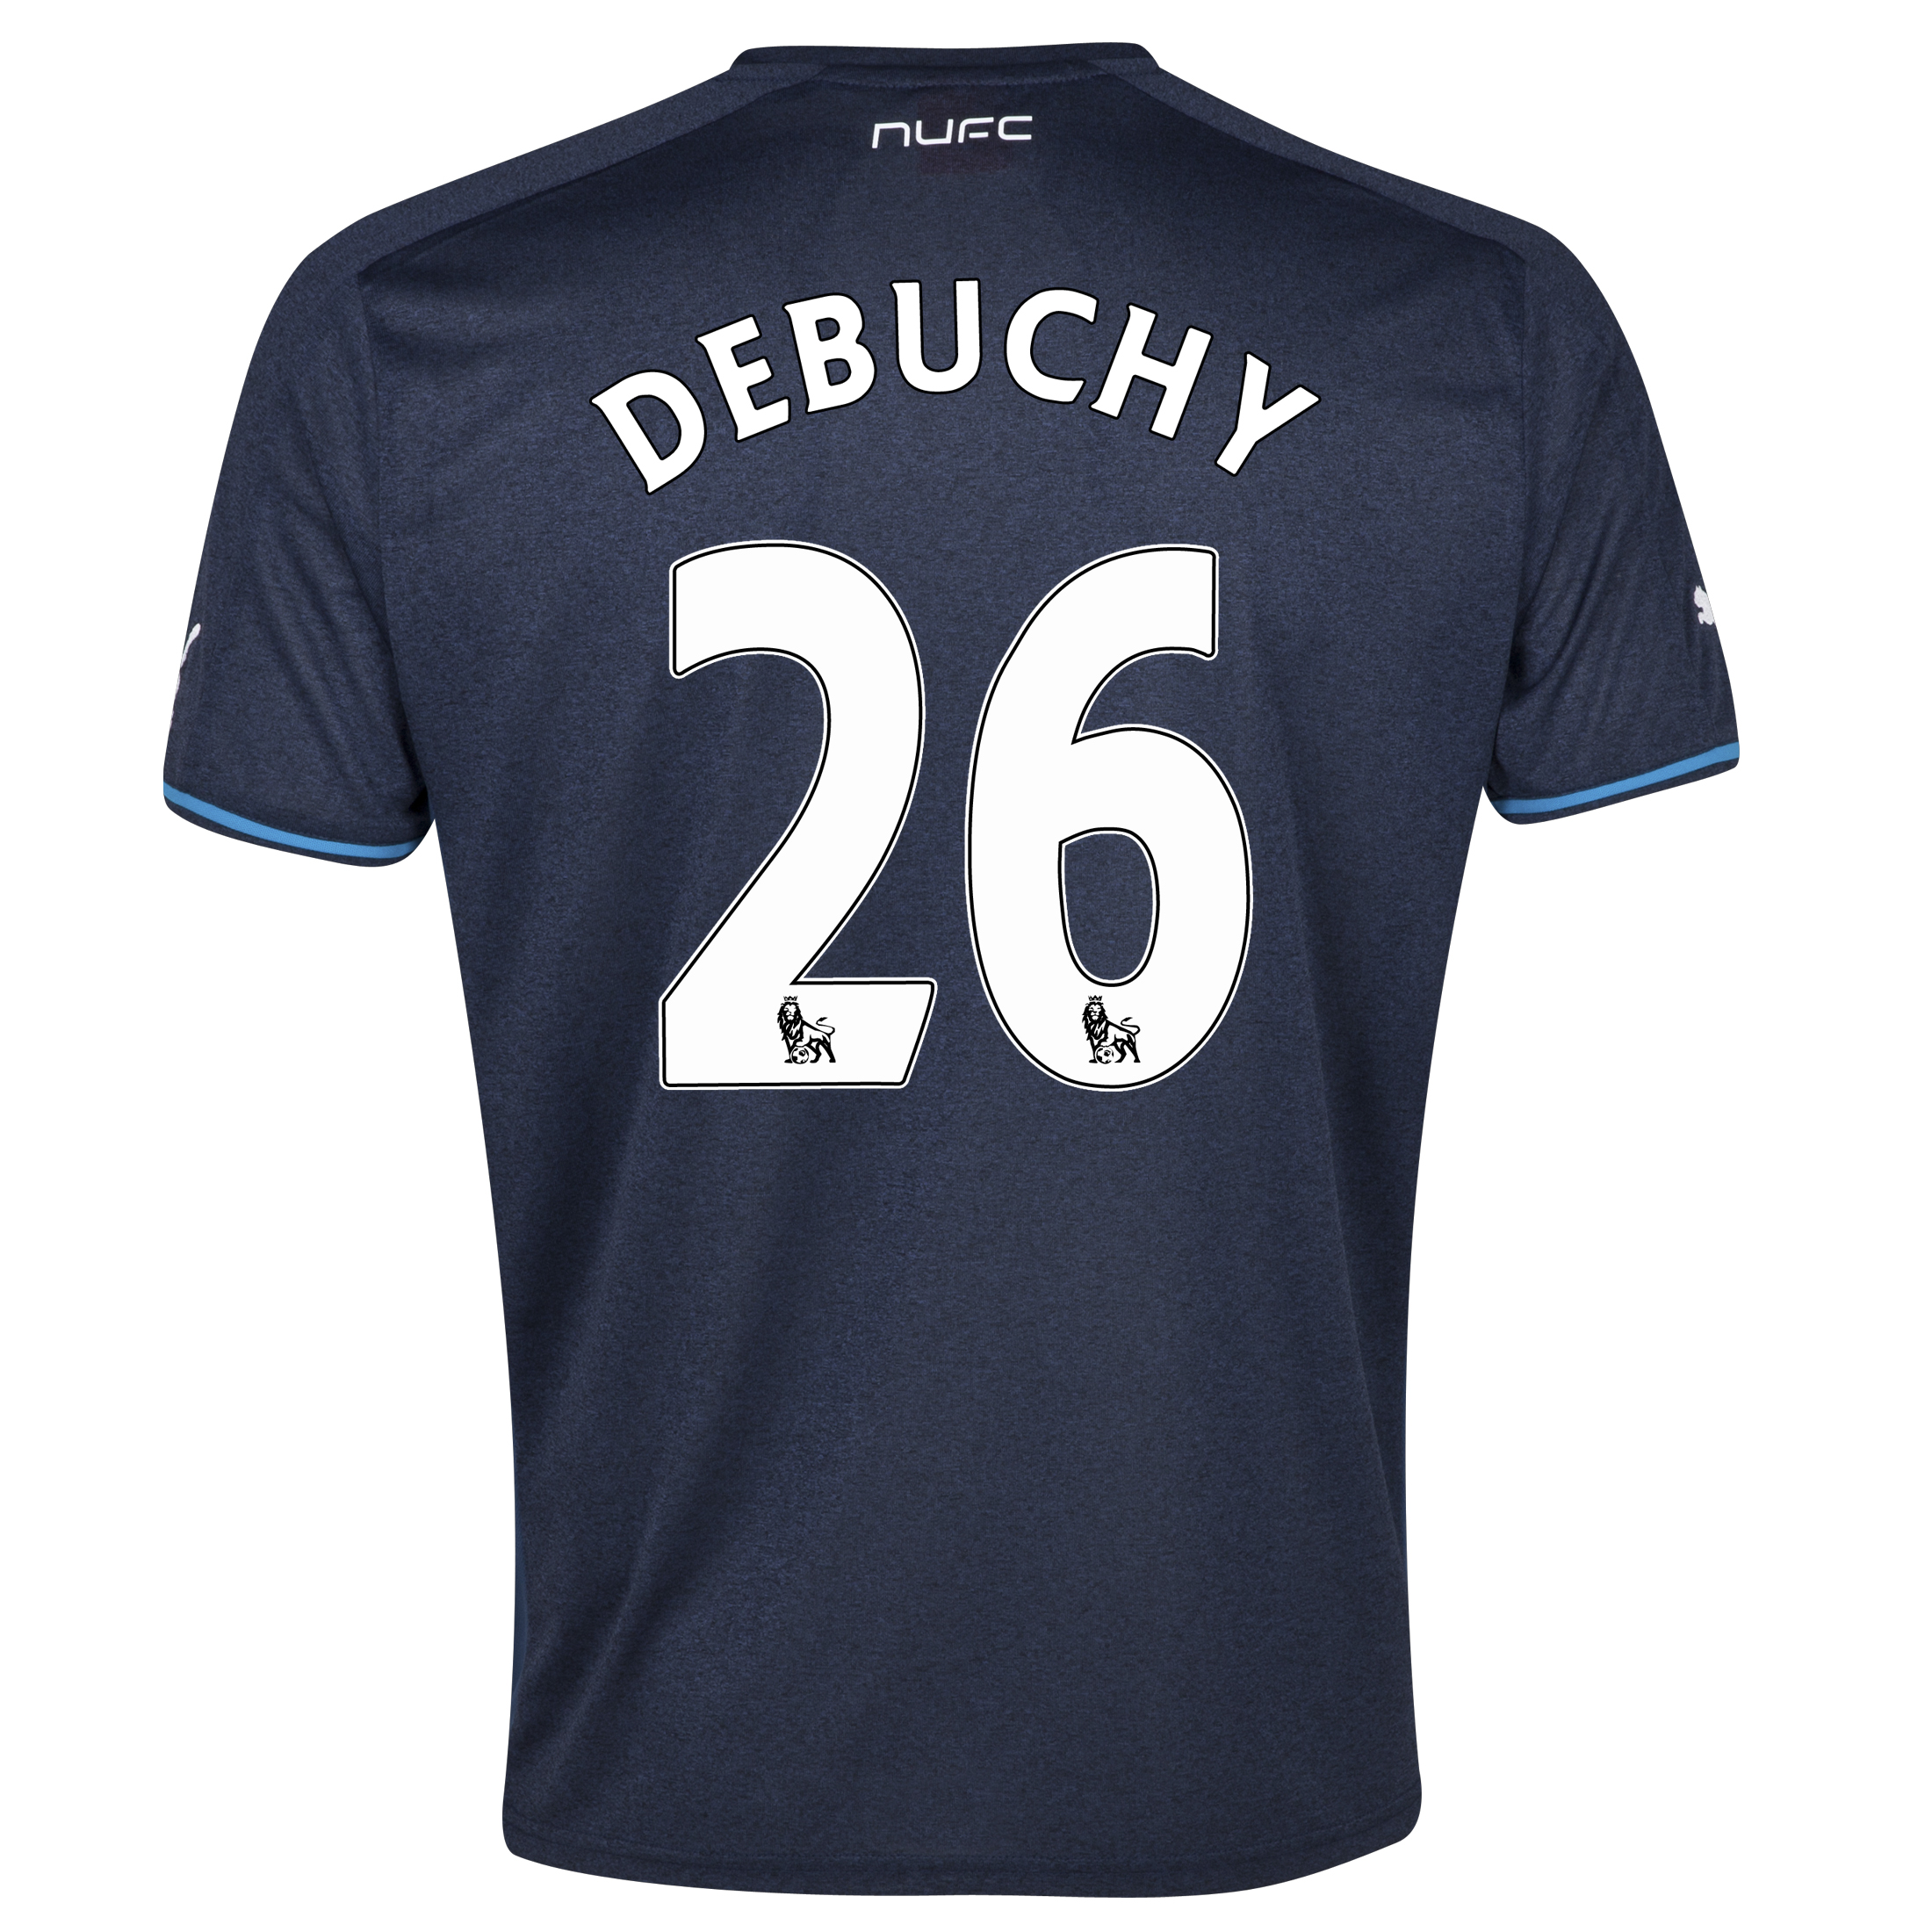 Newcastle United Away Shirt 2013/14 - kids with Debuchy 26 printing